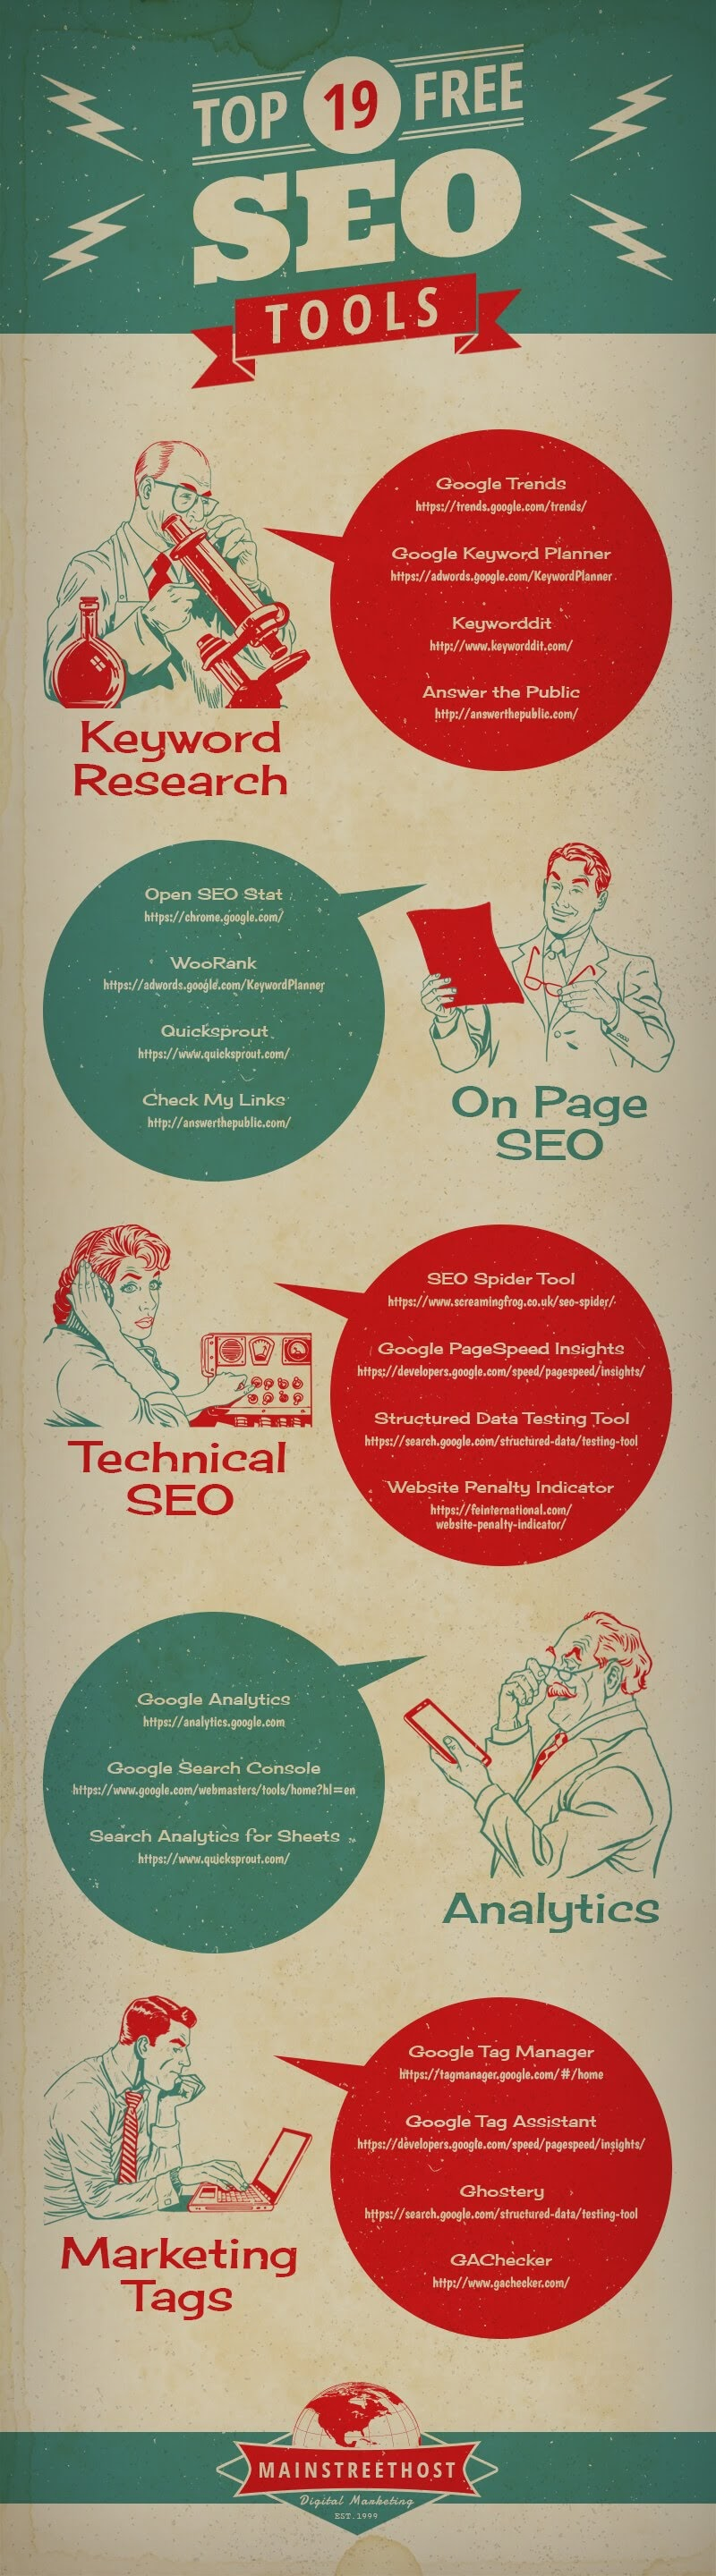 The Top 19 Free SEO Tools [Infographic]